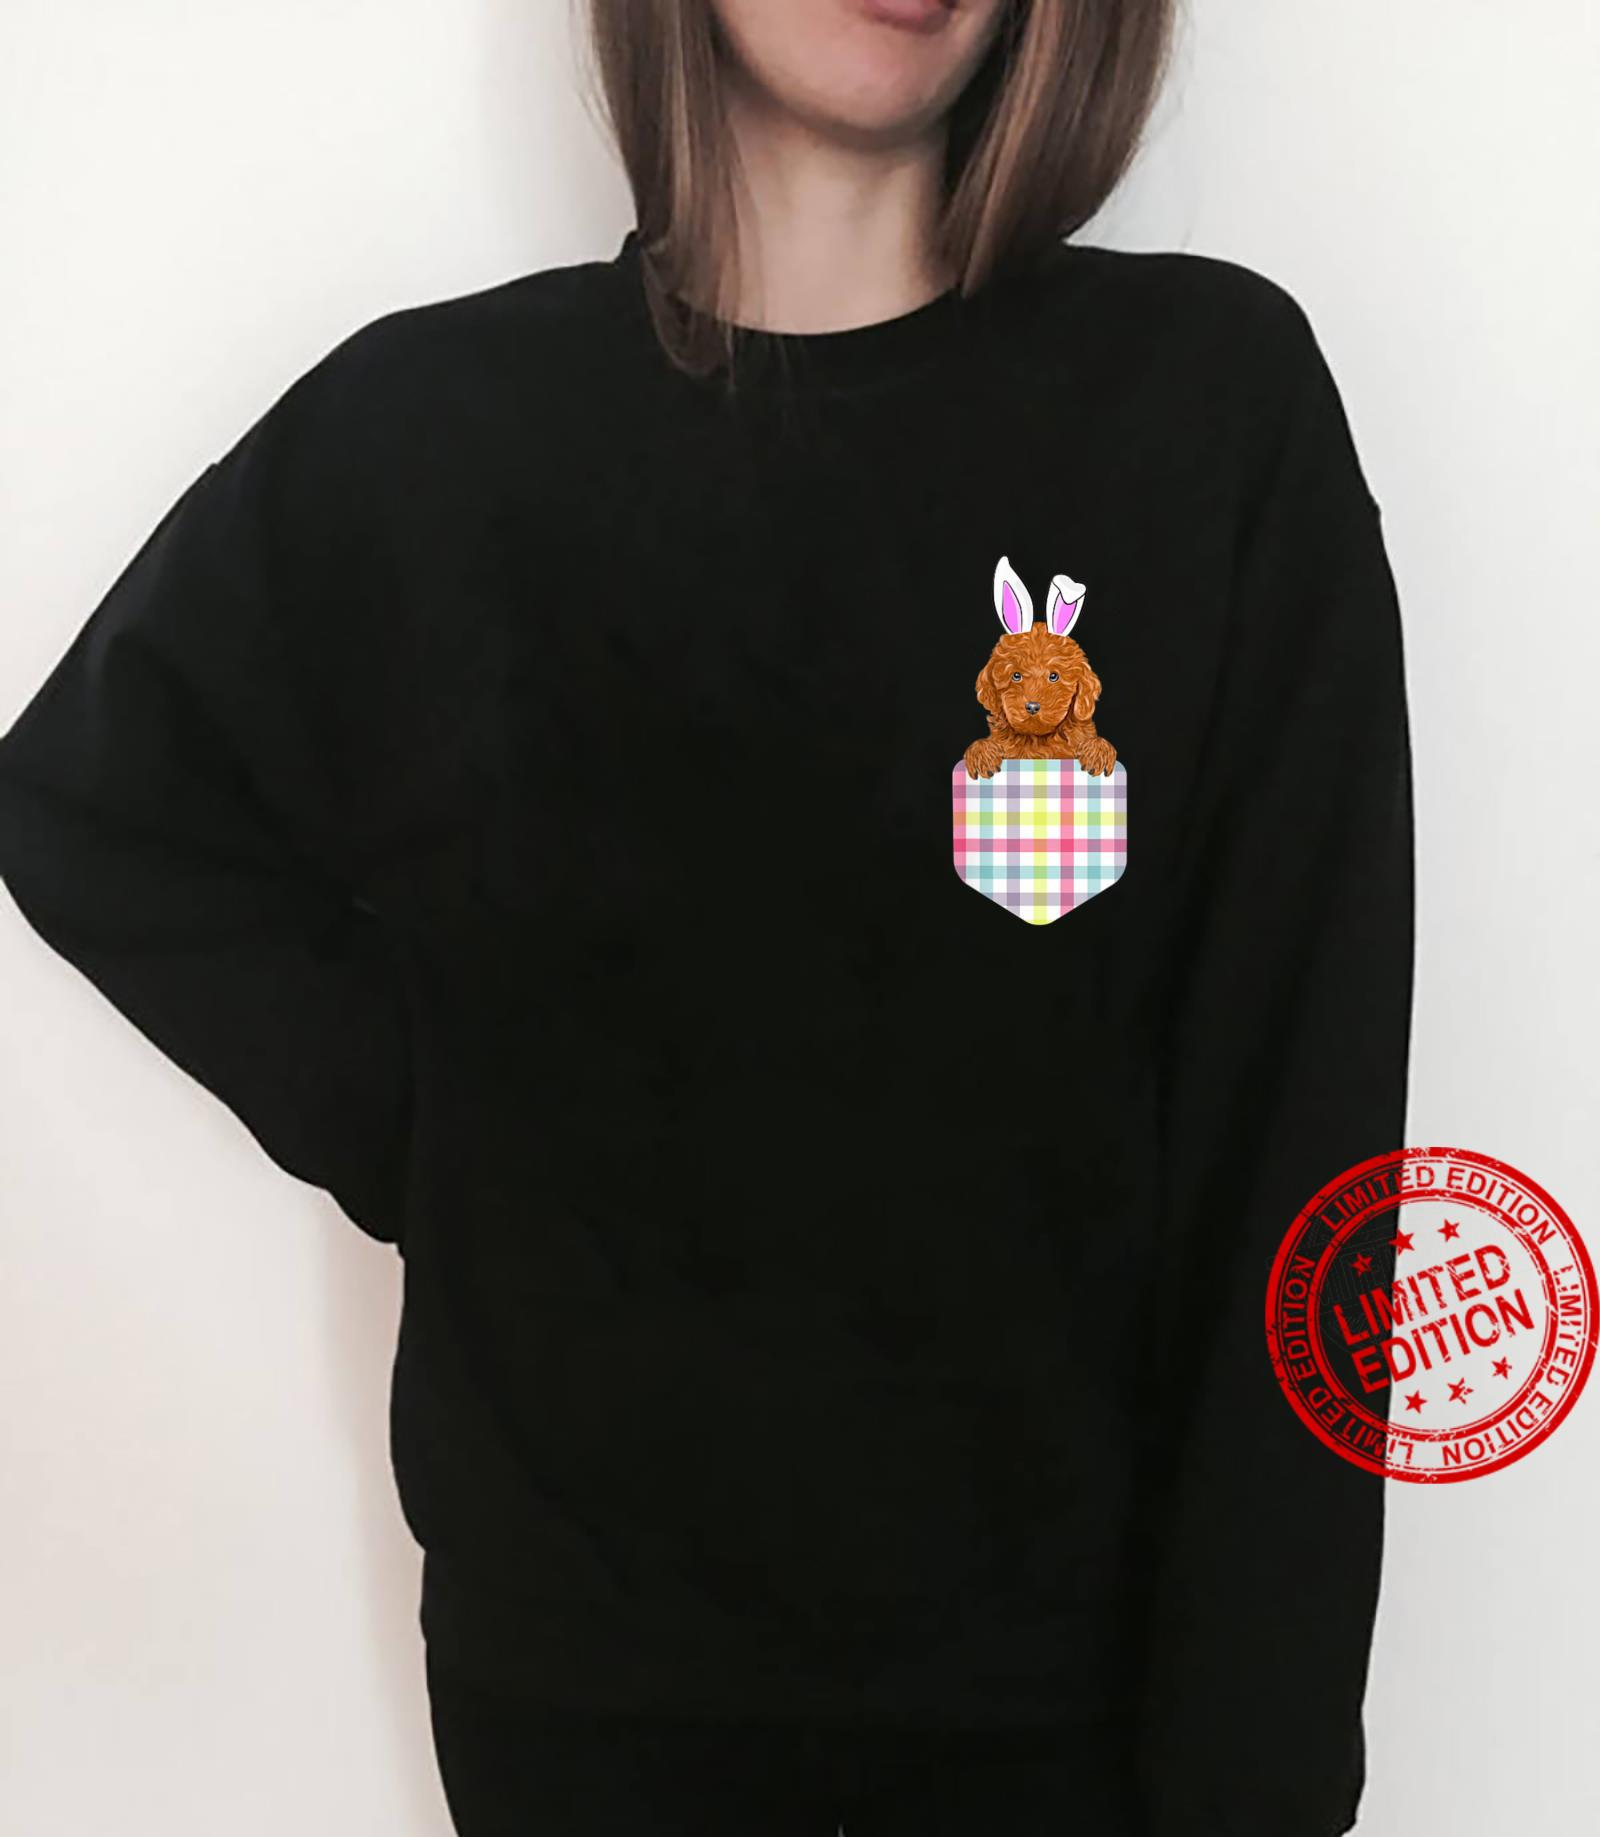 Easter Plaid Brown Poodle Bunny Dog In Pocket Shirt sweater